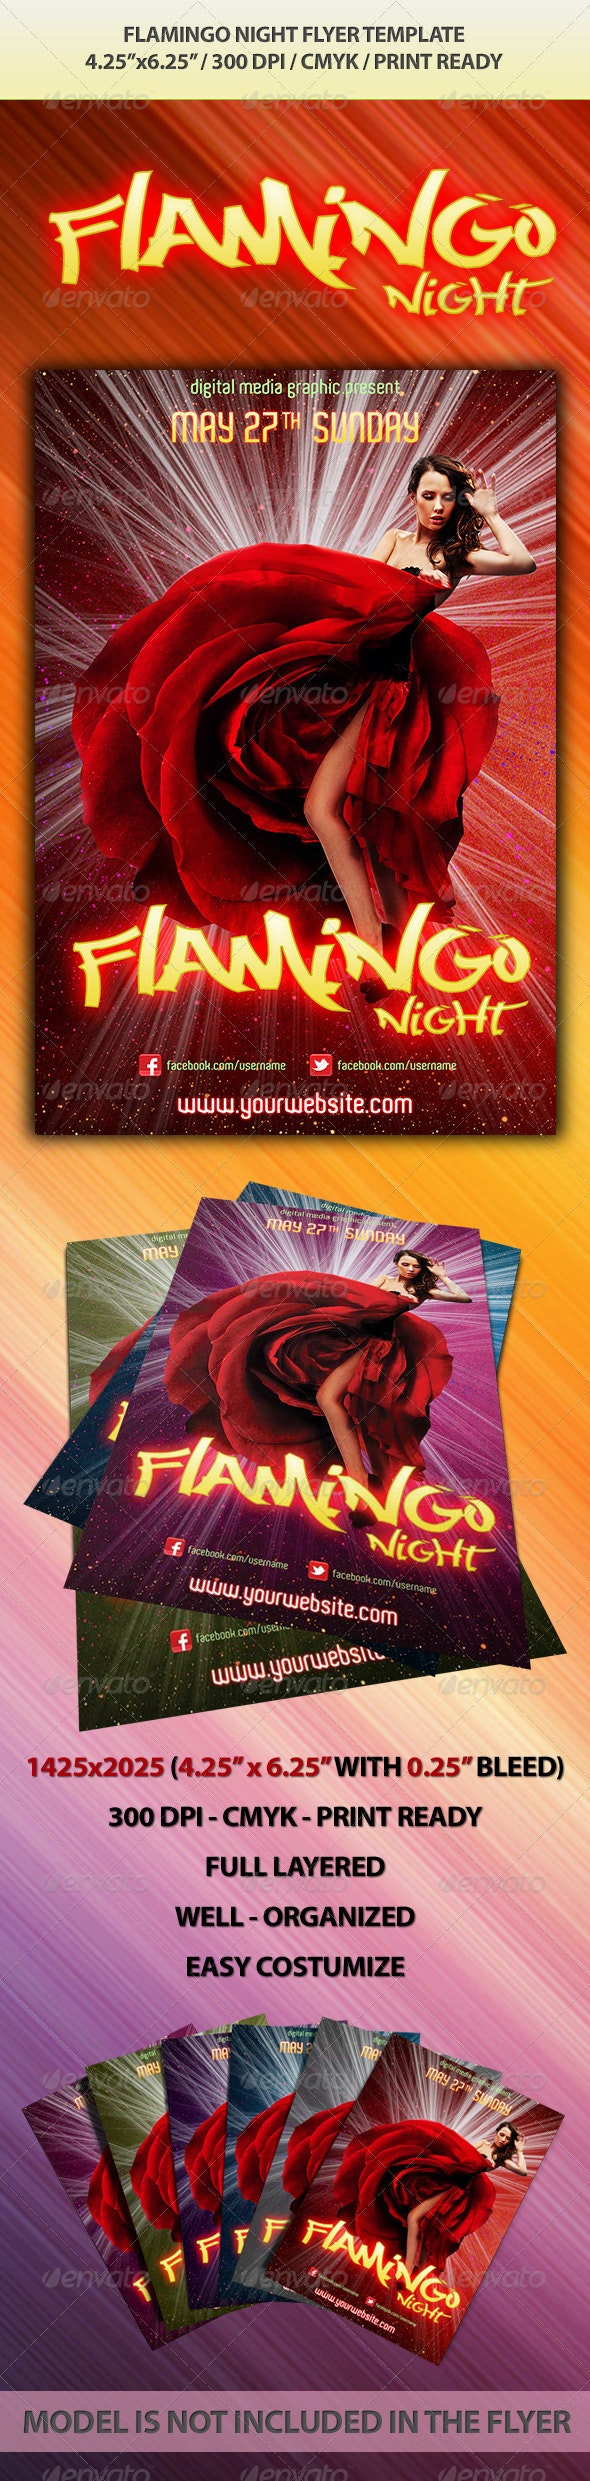 Filamingo Night Flyer Template - Clubs & Parties Events